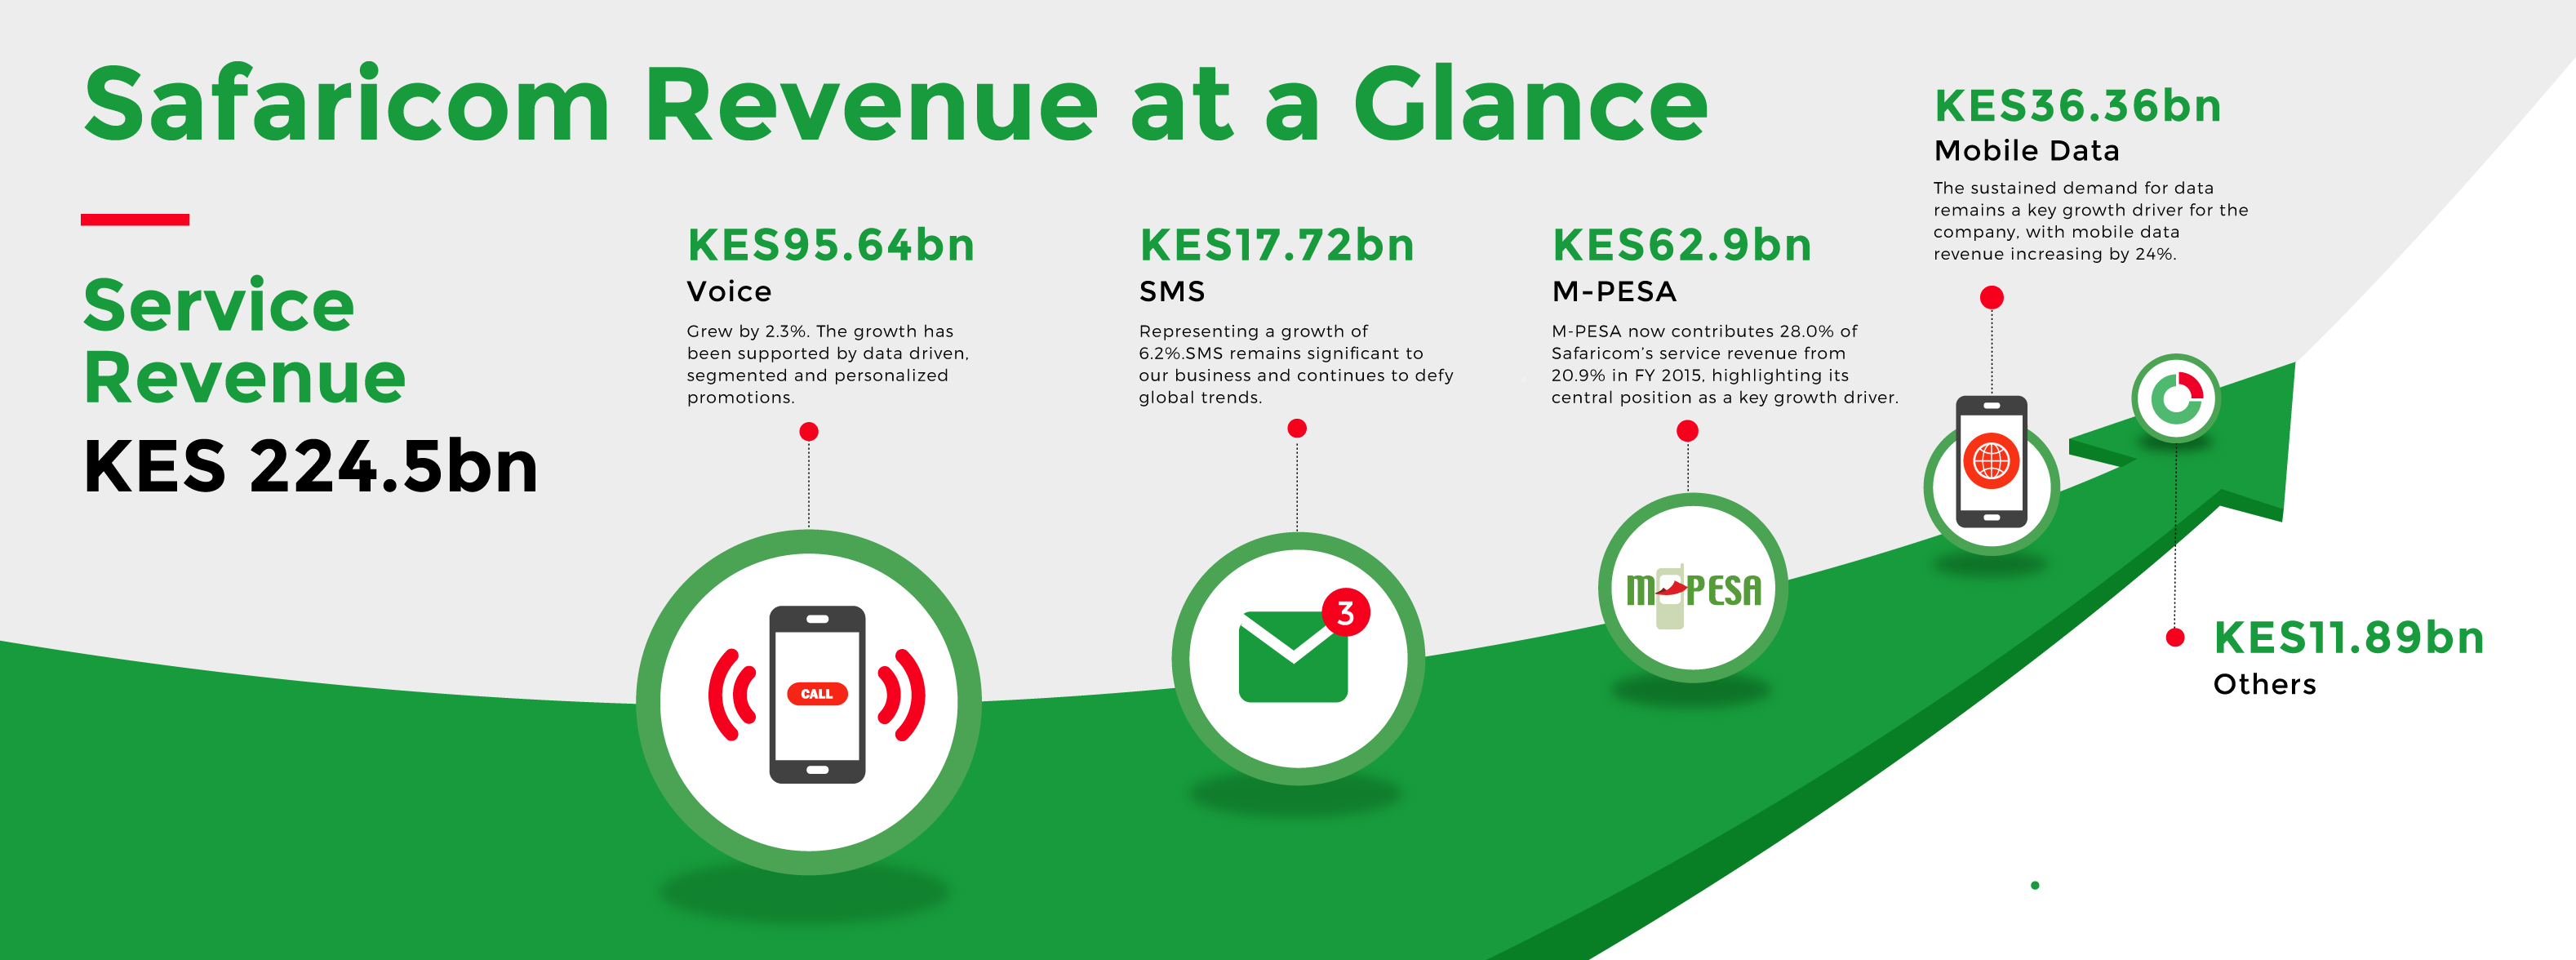 Safaricom maintains high growth momentum